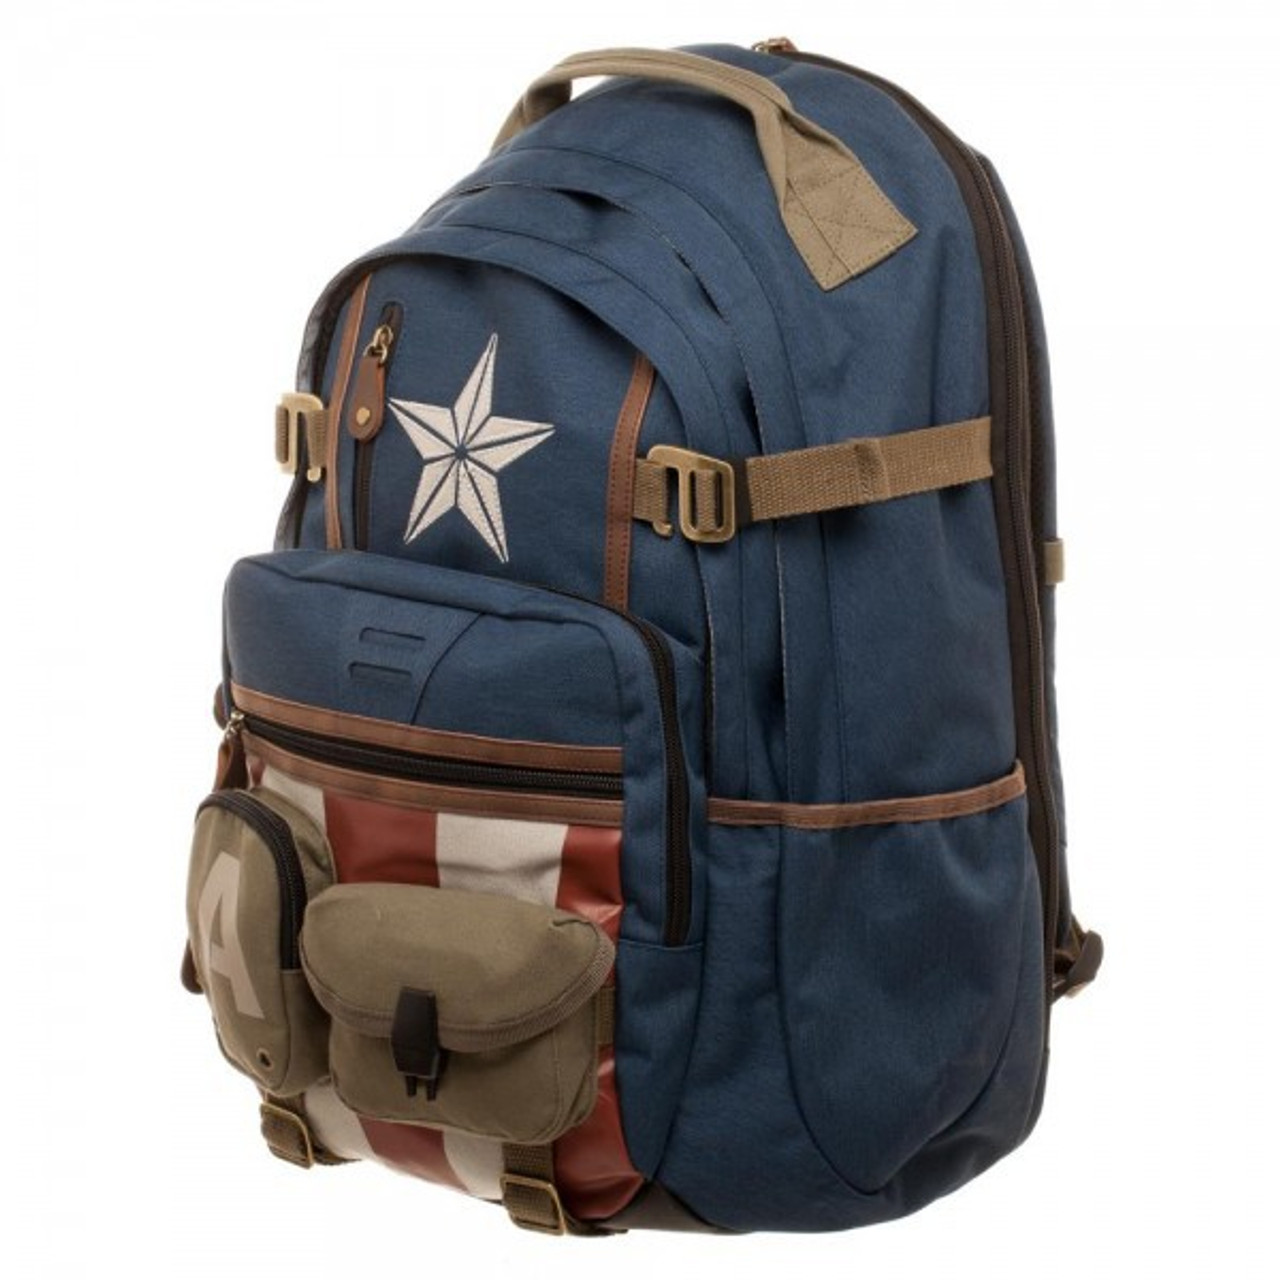 3a3202065c Marvel Captain America Captain America Built with Herringbone Backpack  Apparel Bioworld - ToyWiz